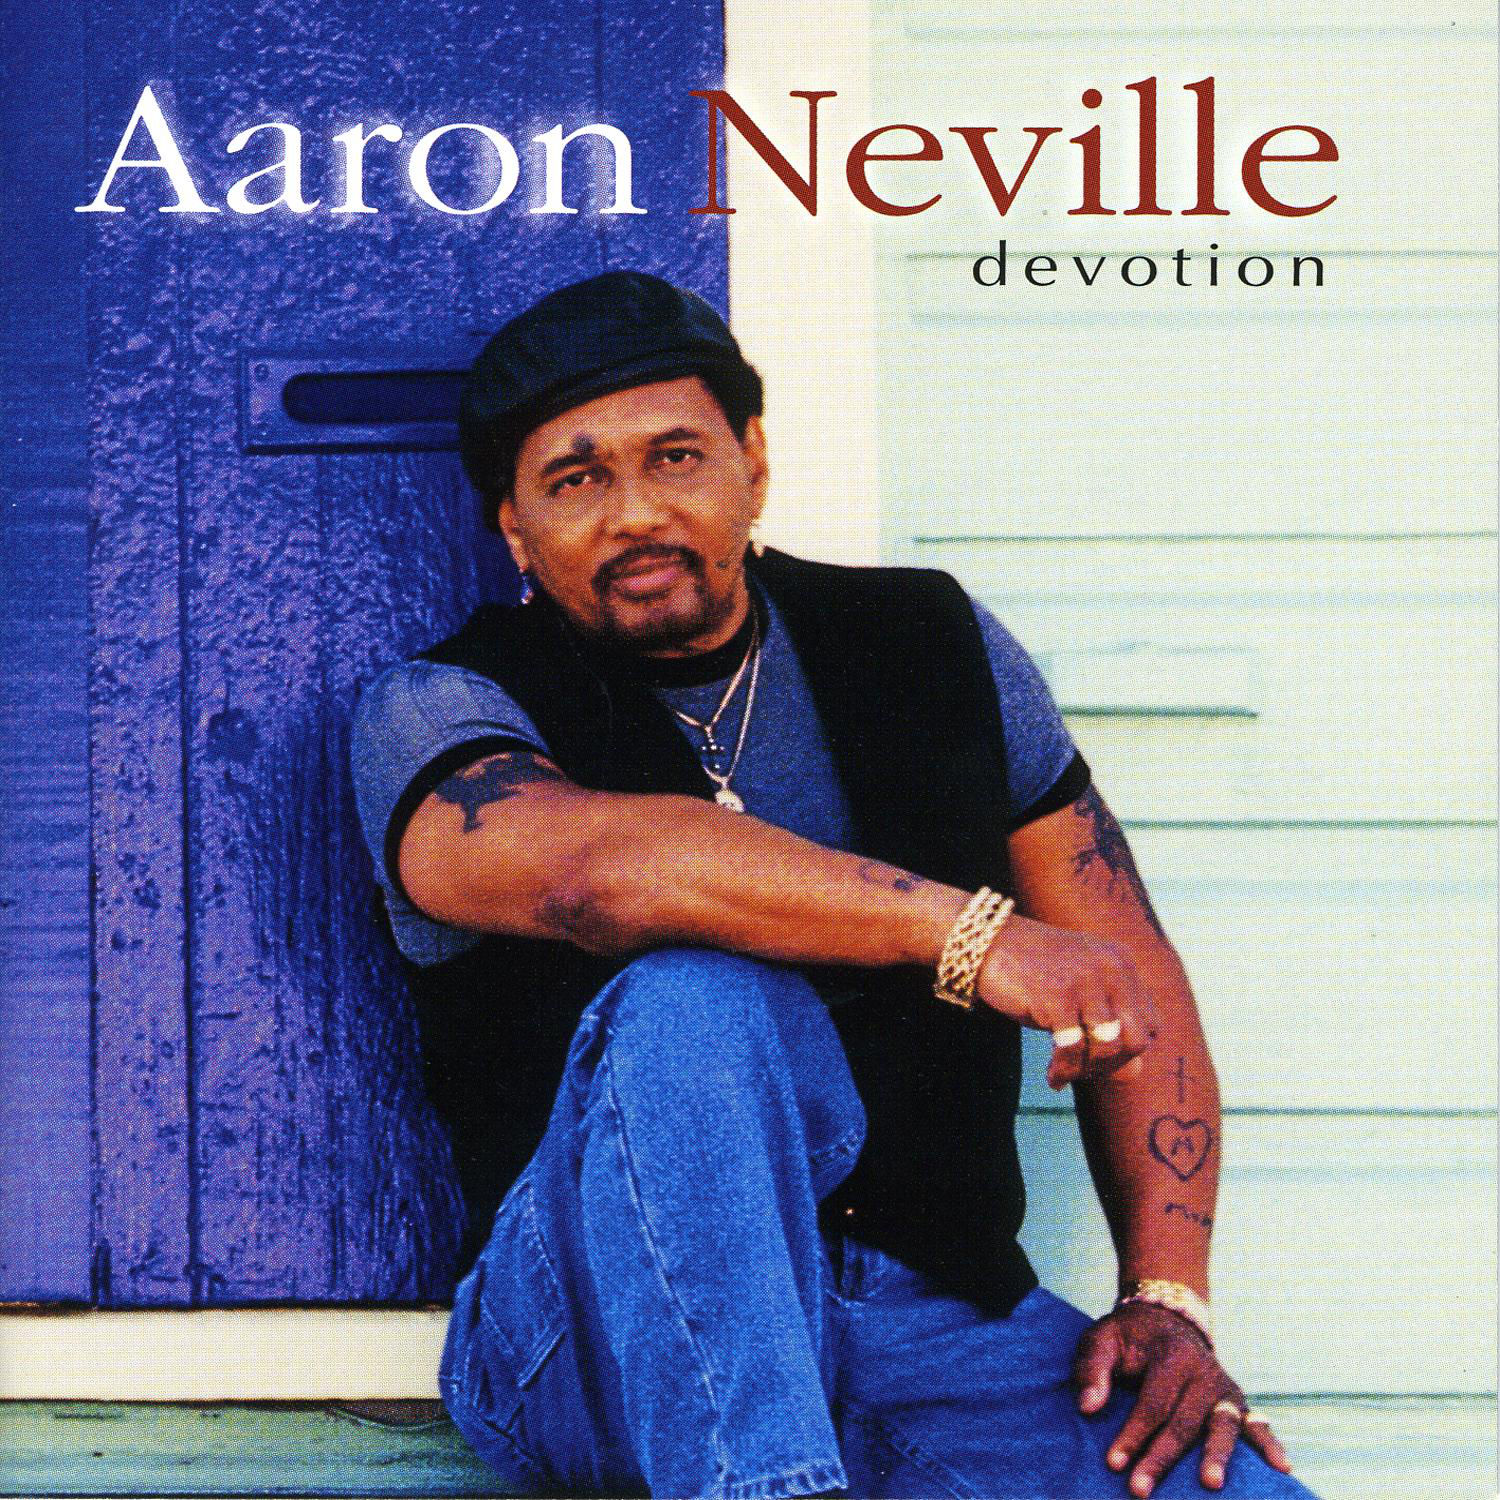 Aaron Neville - Devotion